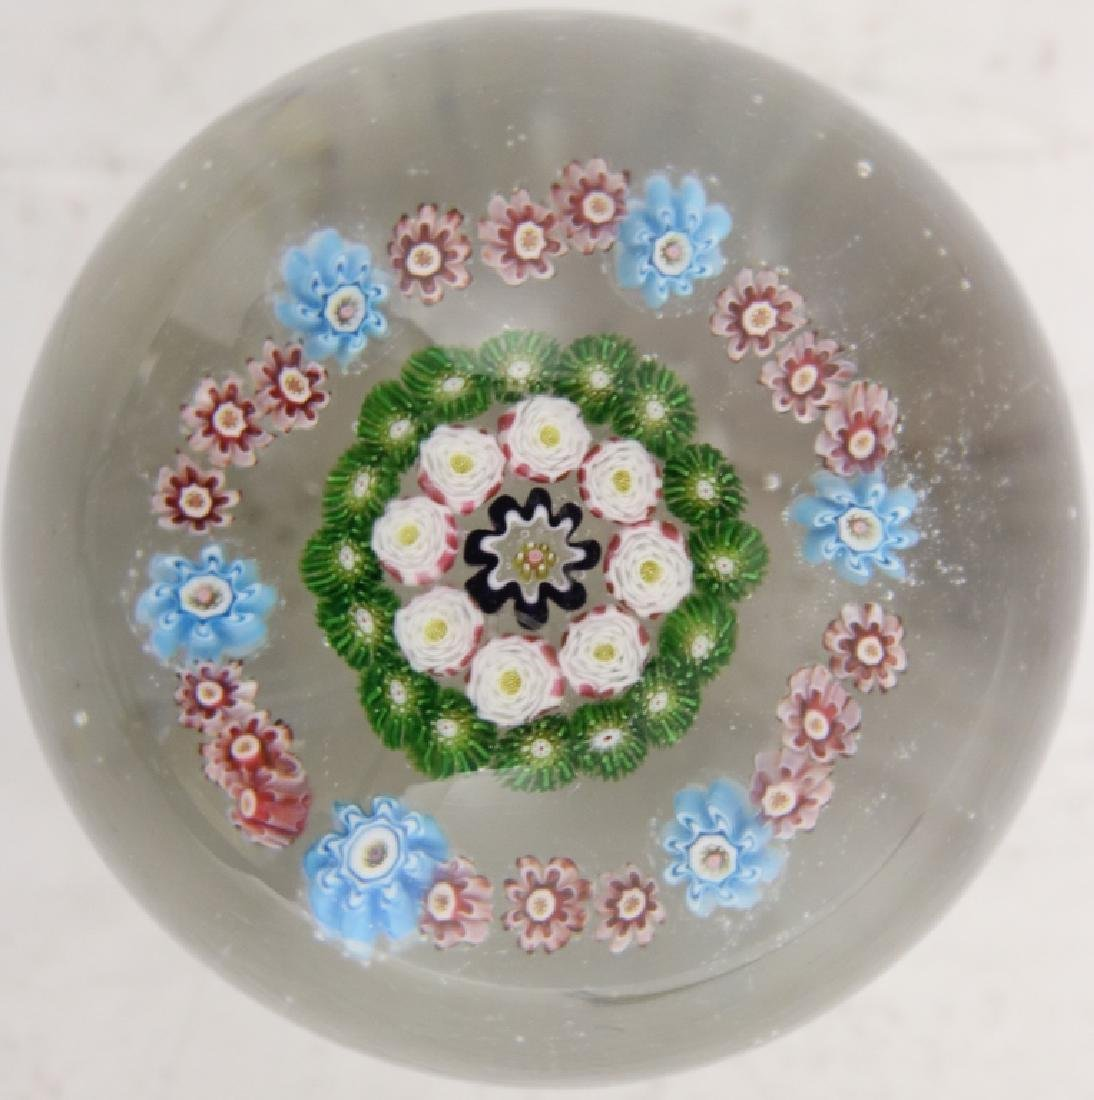 CLICHY PAPERWEIGHT, FRENCH, MOSS CANES, WHITES